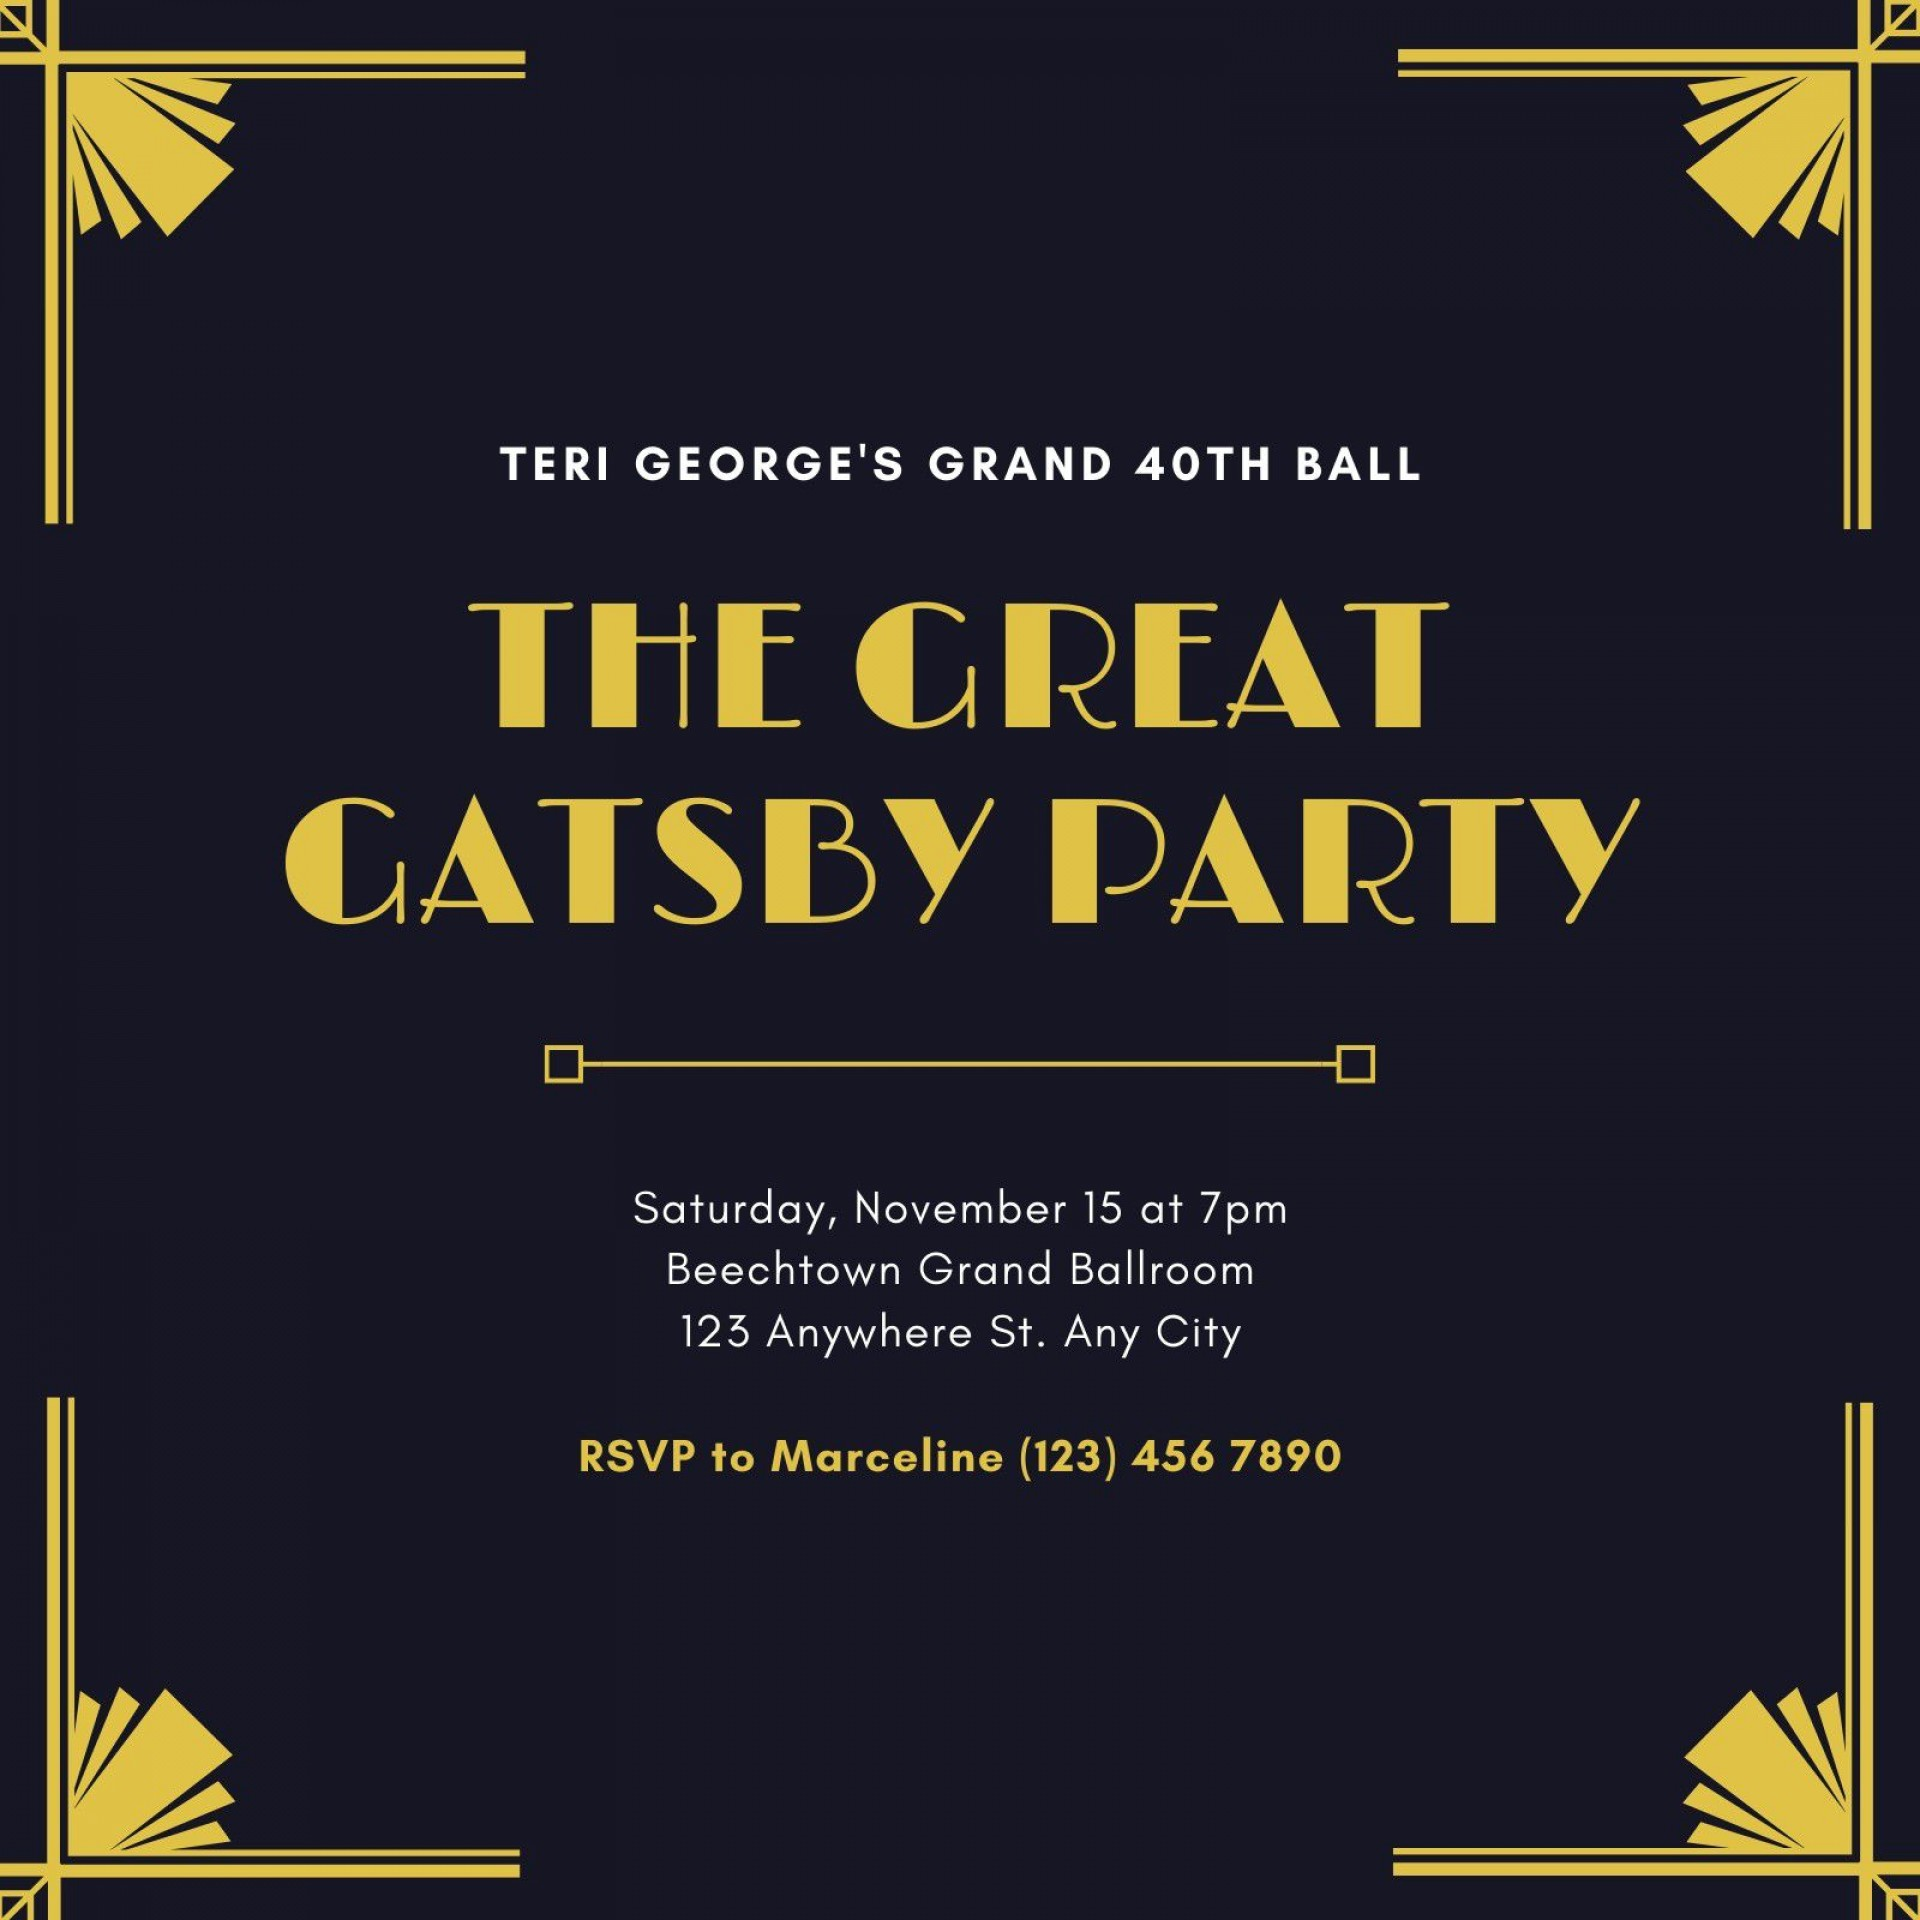 006 Awful Great Gatsby Invitation Template High Resolution  Templates Free Download Blank1920